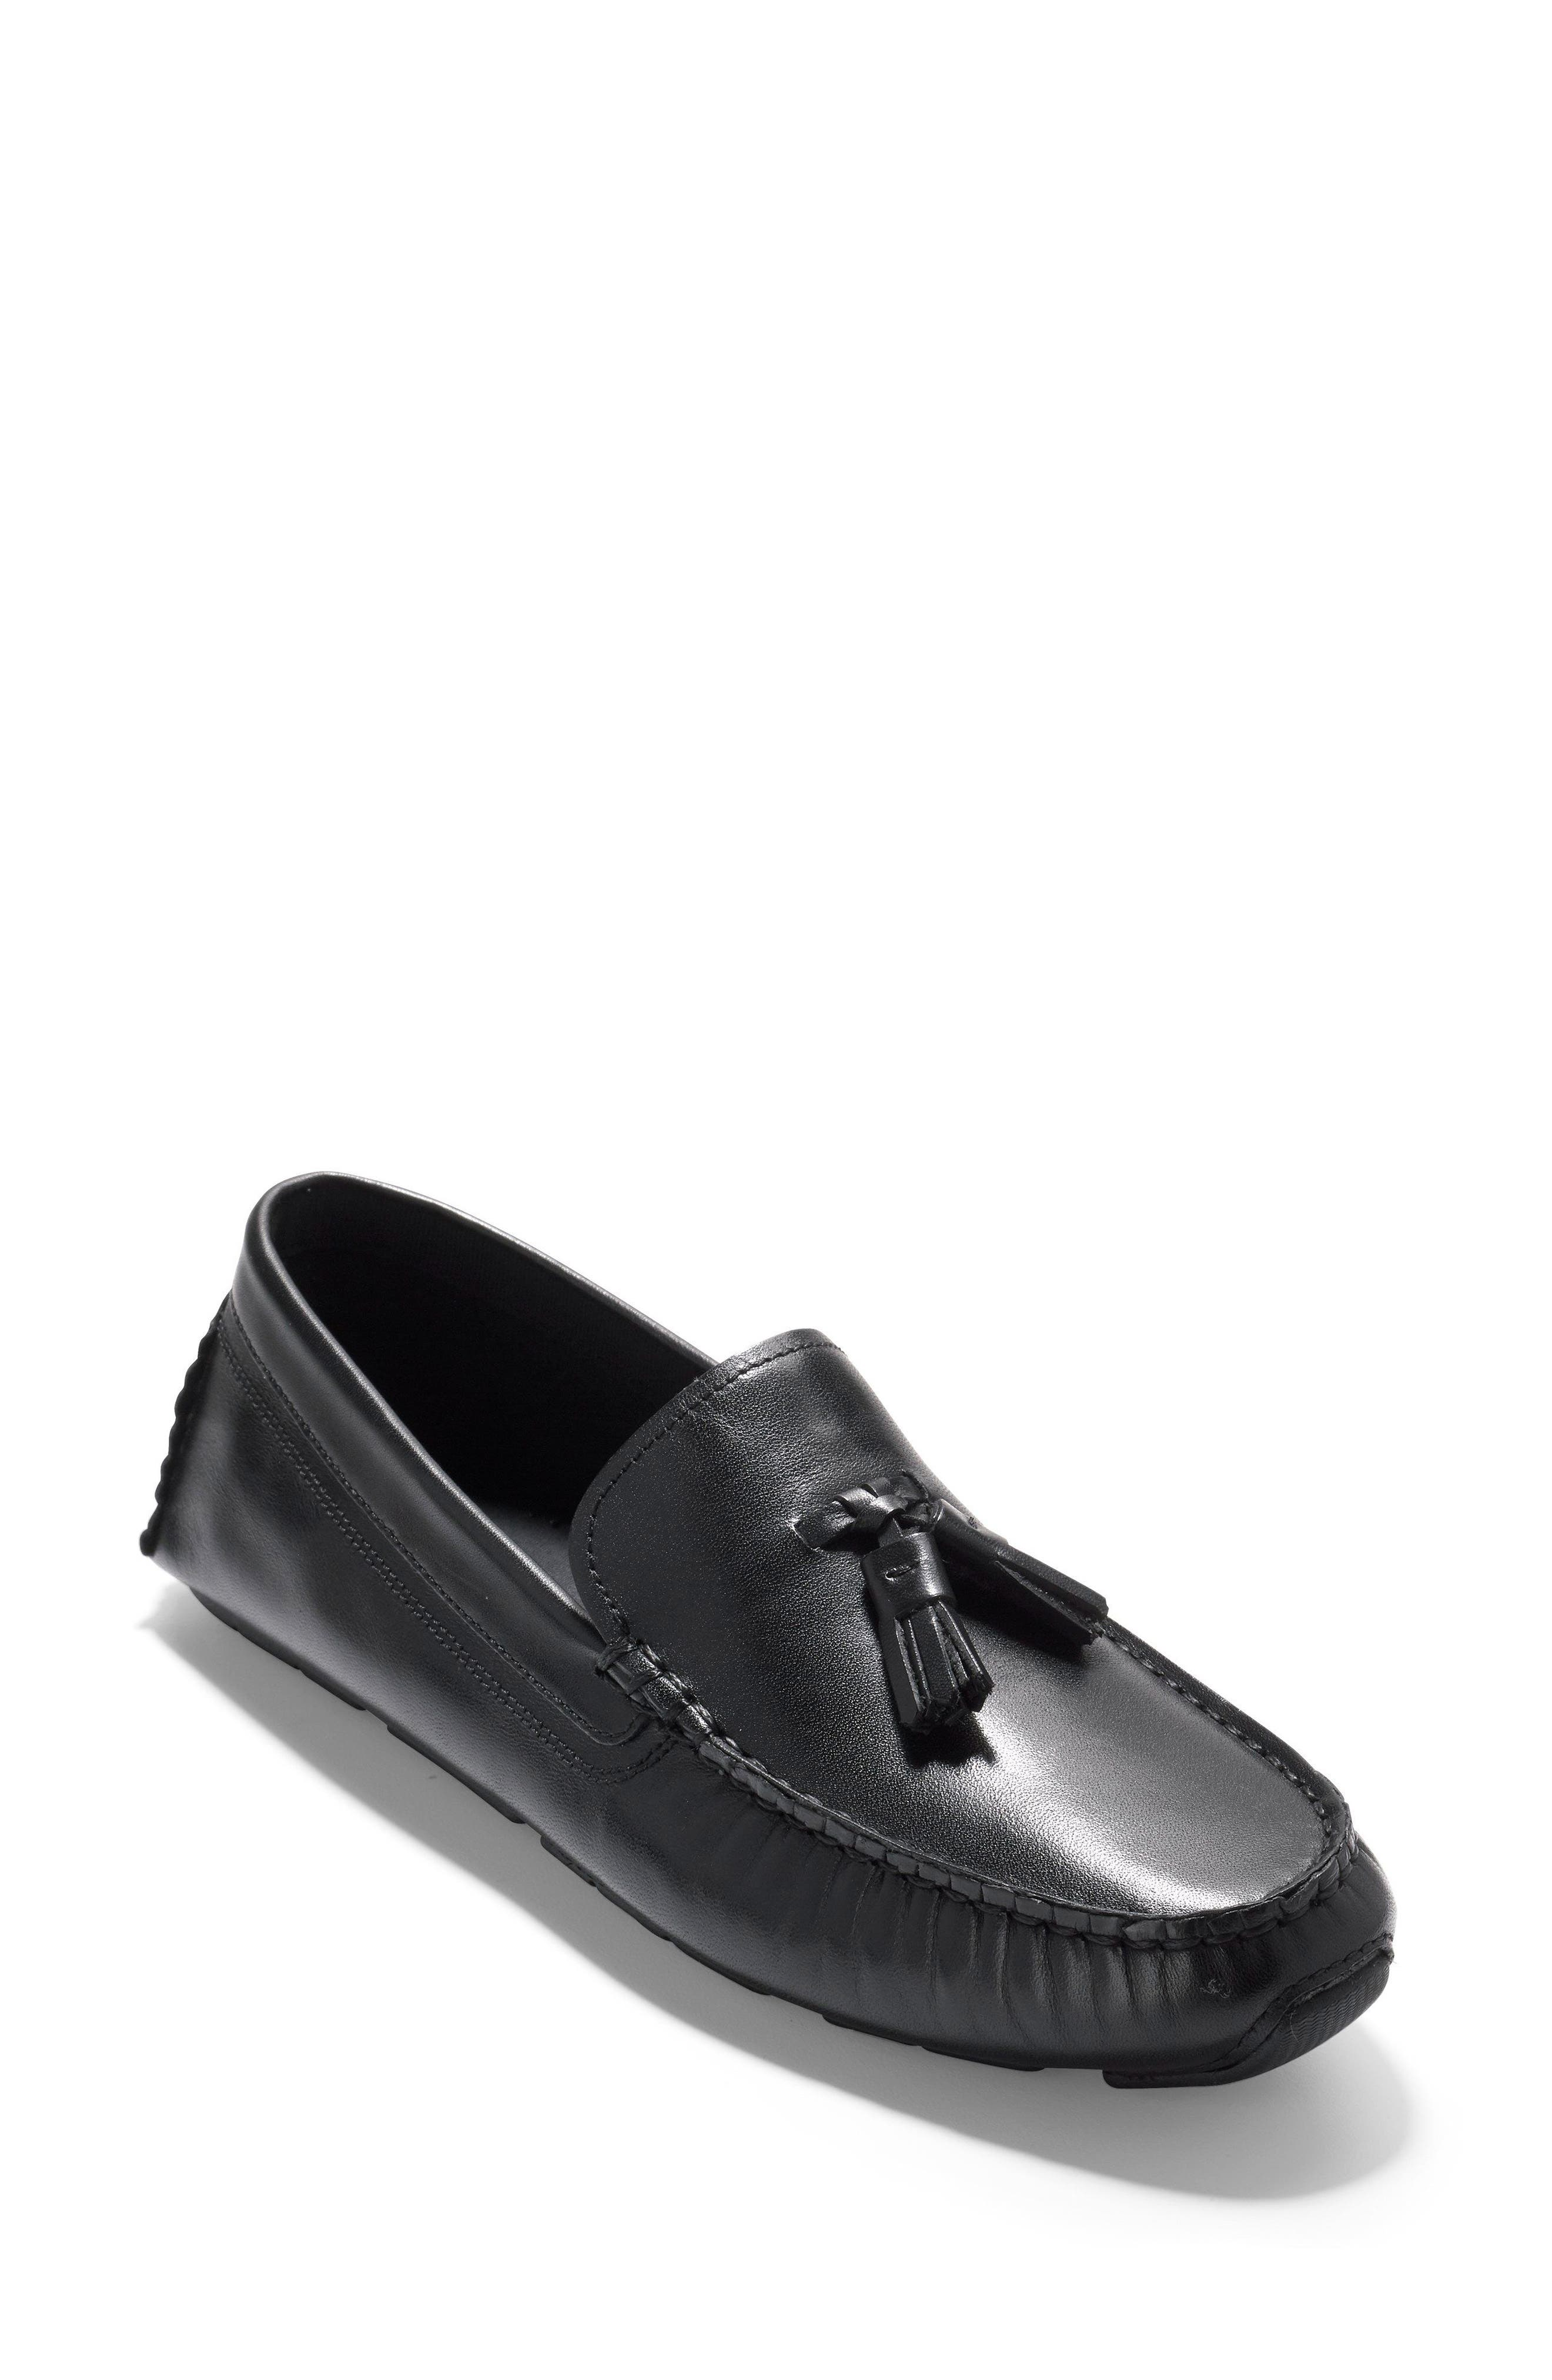 Alternate Image 1 Selected - Cole Haan Rodeo Tassel Driving Loafer (Women)